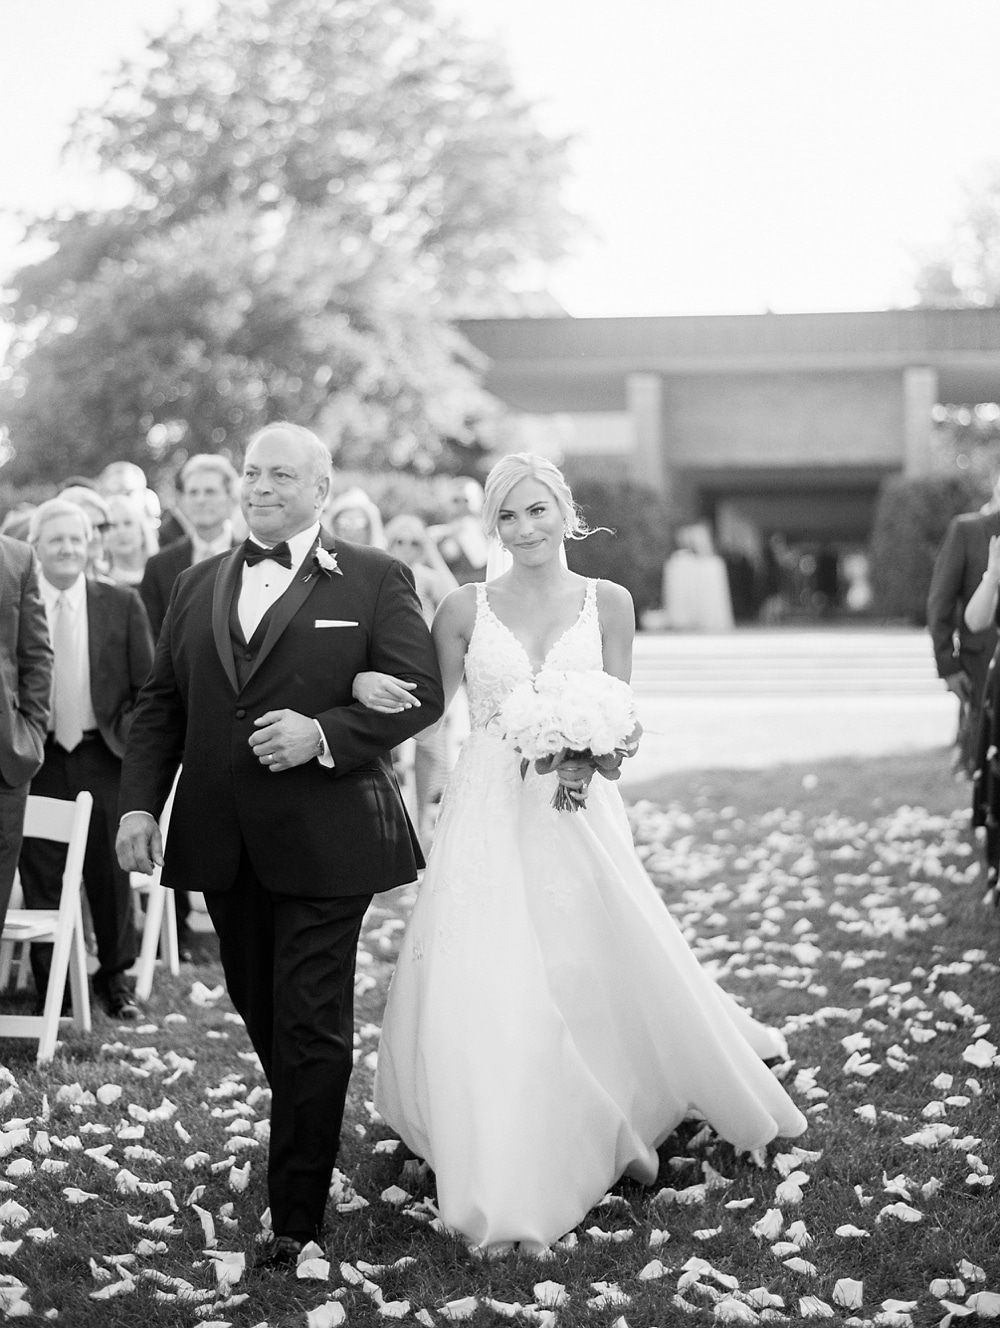 Kristin-La-Voie-Photography-chicago-botanic-garden-wedding-photos-114